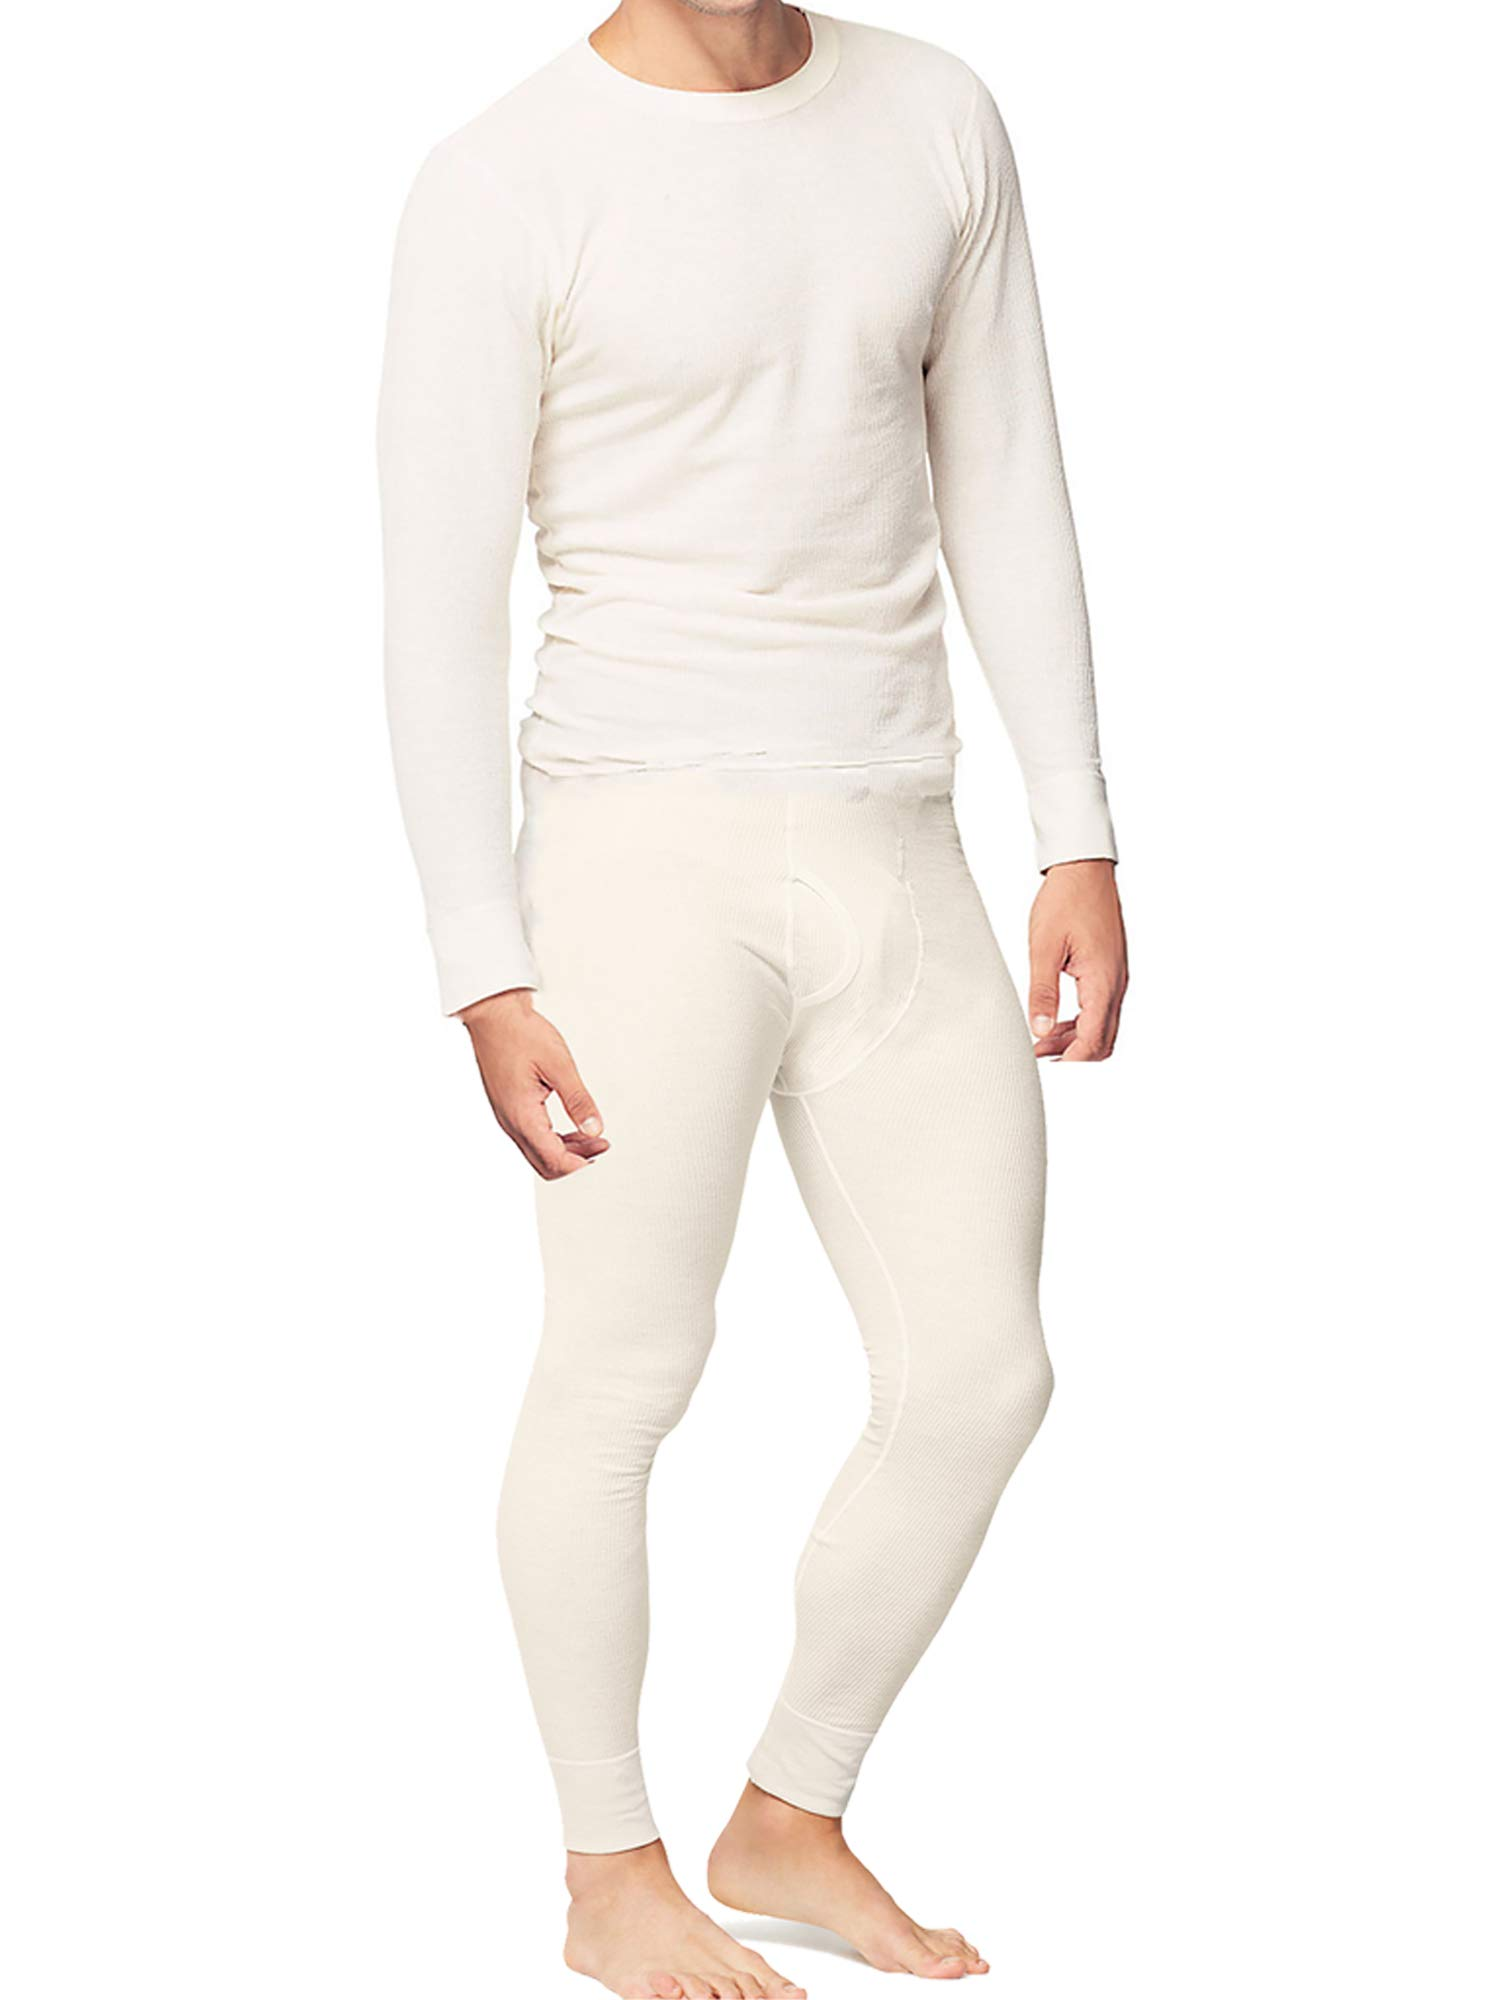 Place and Street Men's Cotton Thermal Underwear Set Shirt Pants Long Johns Fleece Lined White by Place and Street